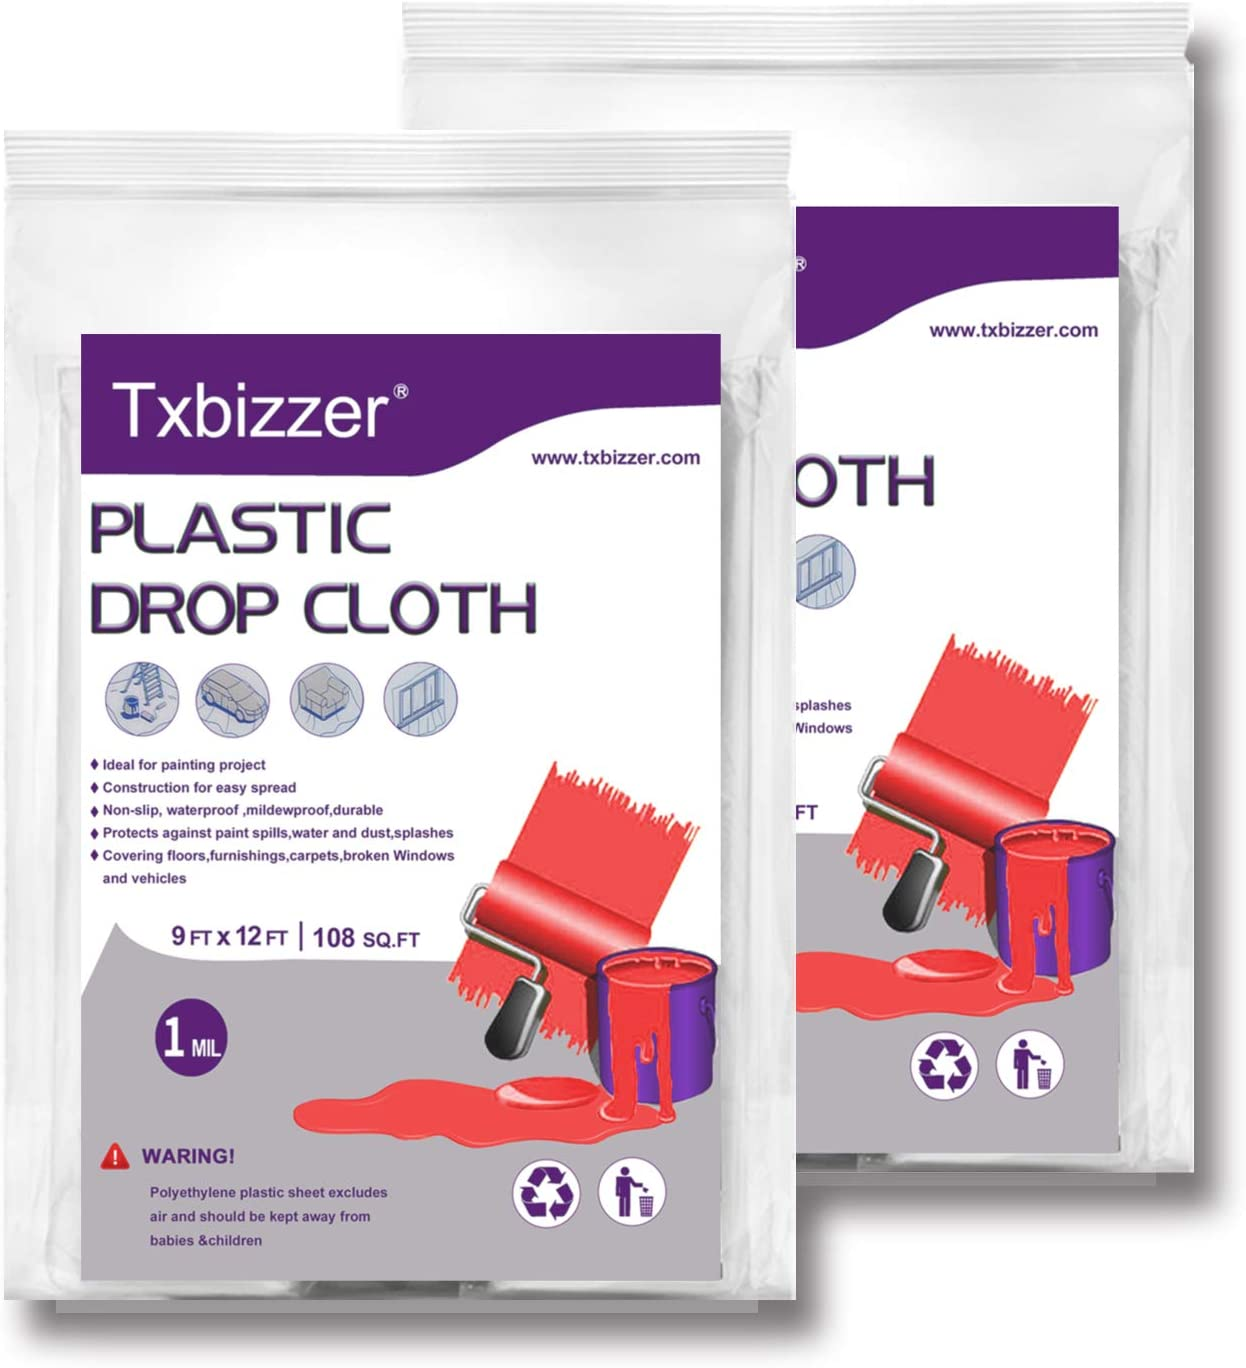 Txbizzer 2 Piece 1 Mil Heavy Duty Painter Plastic Drop Cloths Sheet,Waterproof Anti-dust Furniture Cover,9x12 Feet Disposable Tarp for Painting for Couch Cover and Furniture Cover (2 Pack)